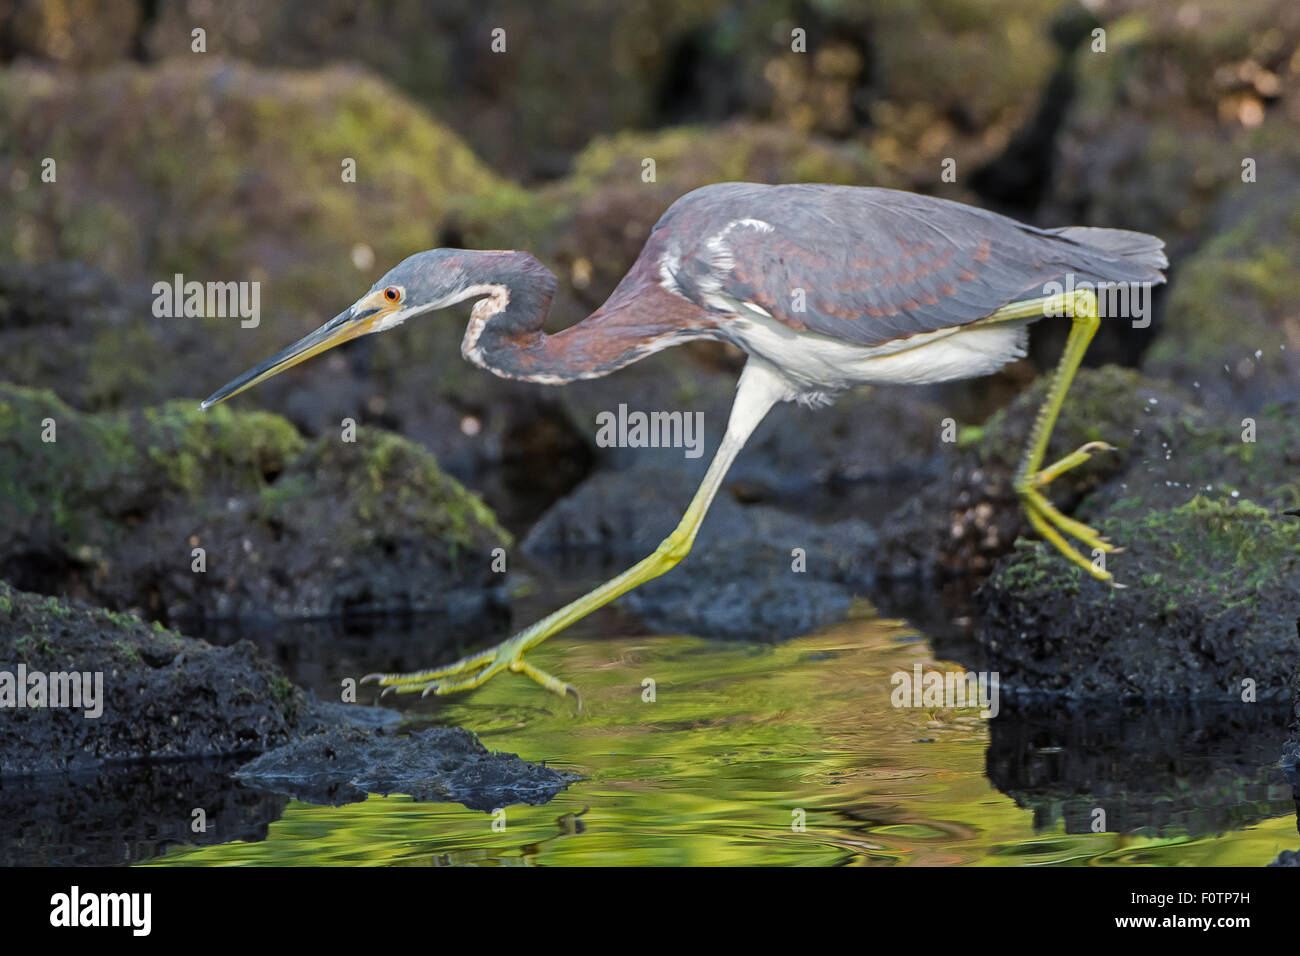 Tricolored Heron running - Stock Image